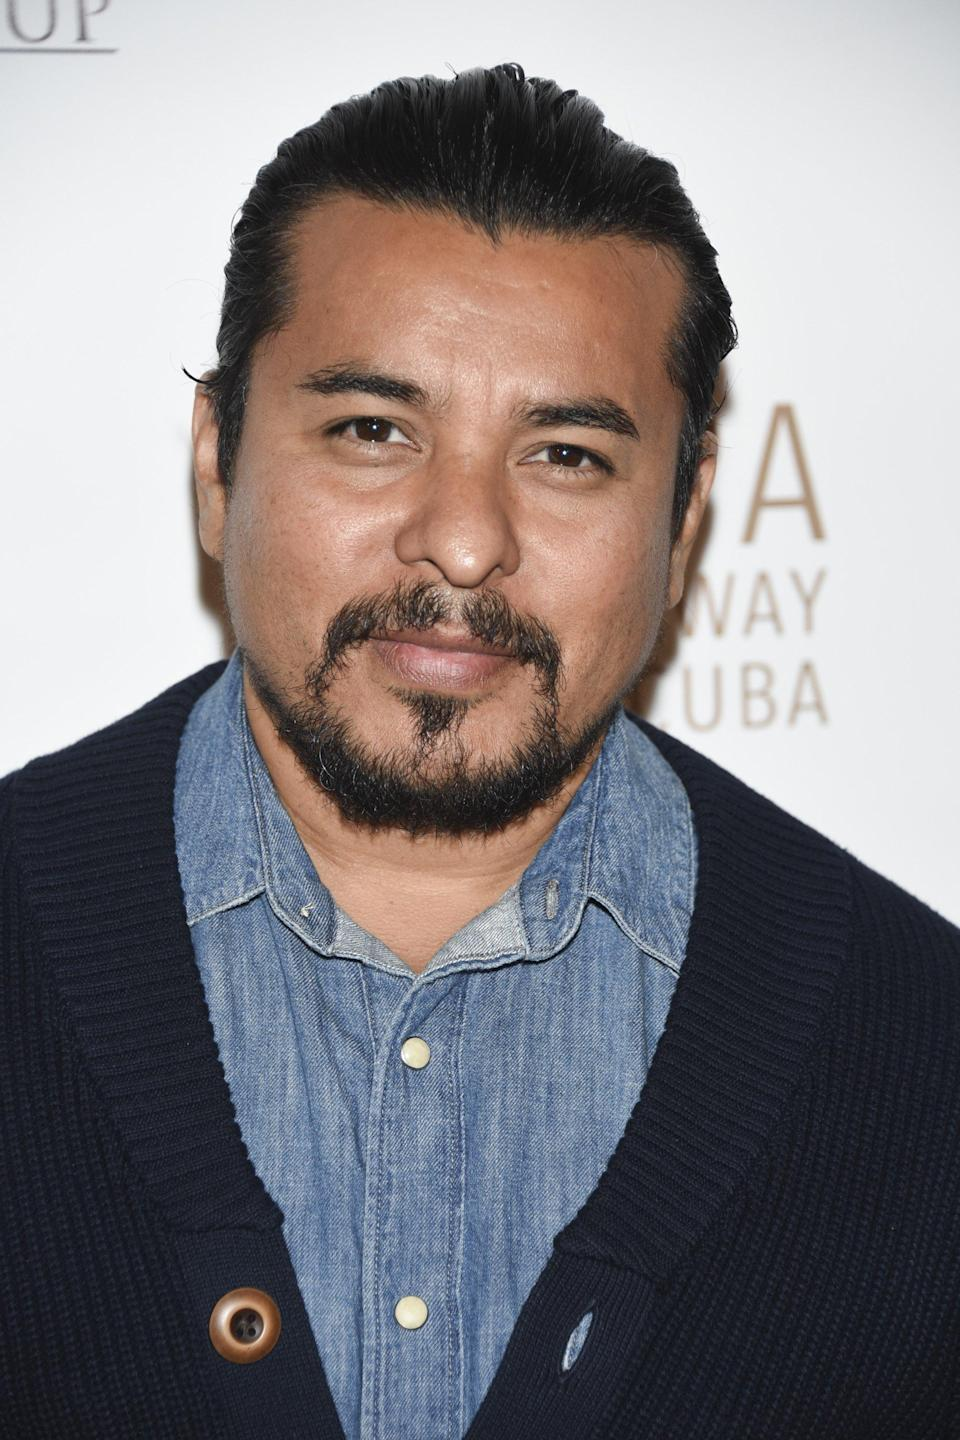 <p>Jacob played Selena's brother A.B. Quintanilla, and since then, he has continued to act in movies and TV shows. He played one of the miners in <strong>The 33</strong> and took on the role of Domingo Colon in Marvel's <strong>Luke Cage</strong>. </p>